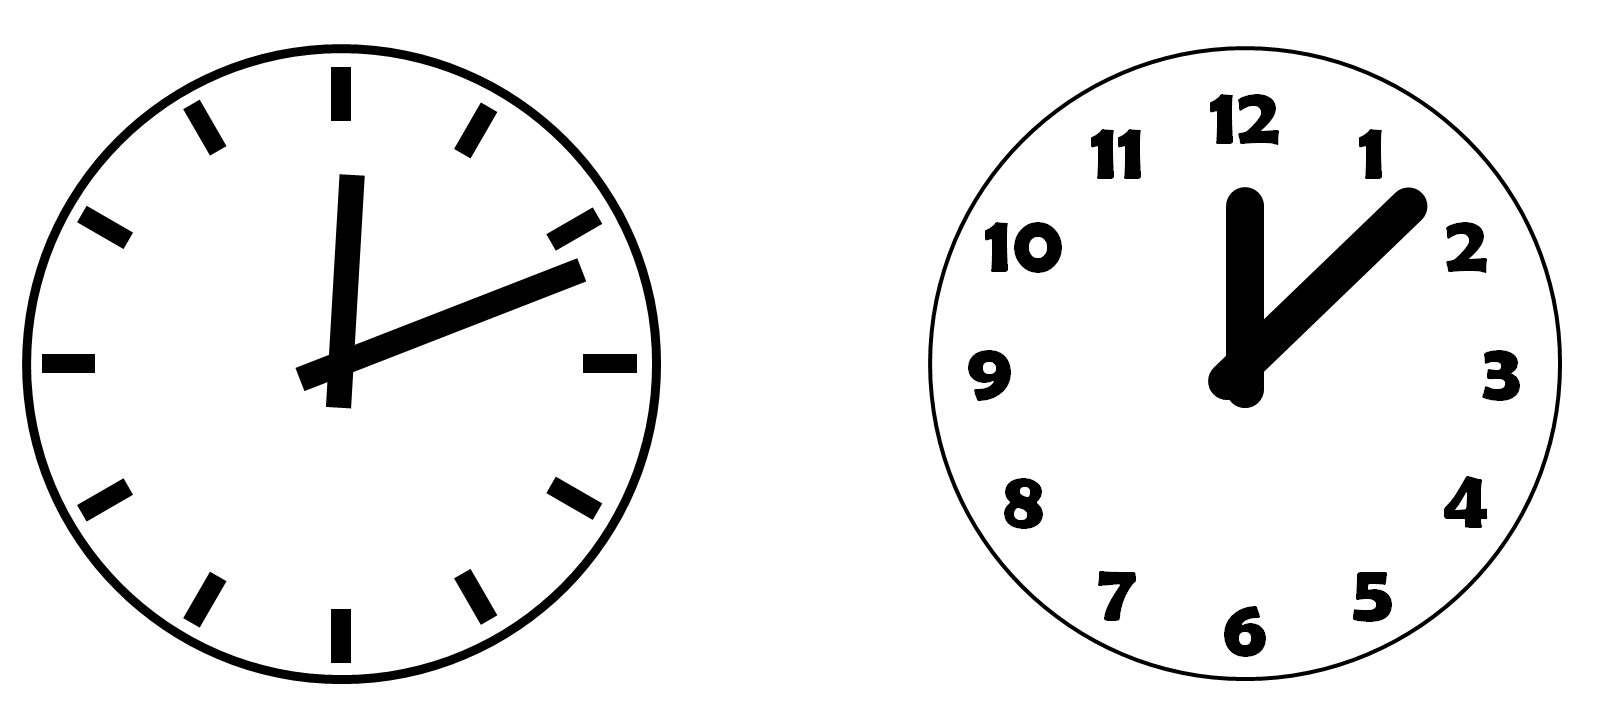 Clipart clock 6 am, Clipart clock 6 am Transparent FREE for.